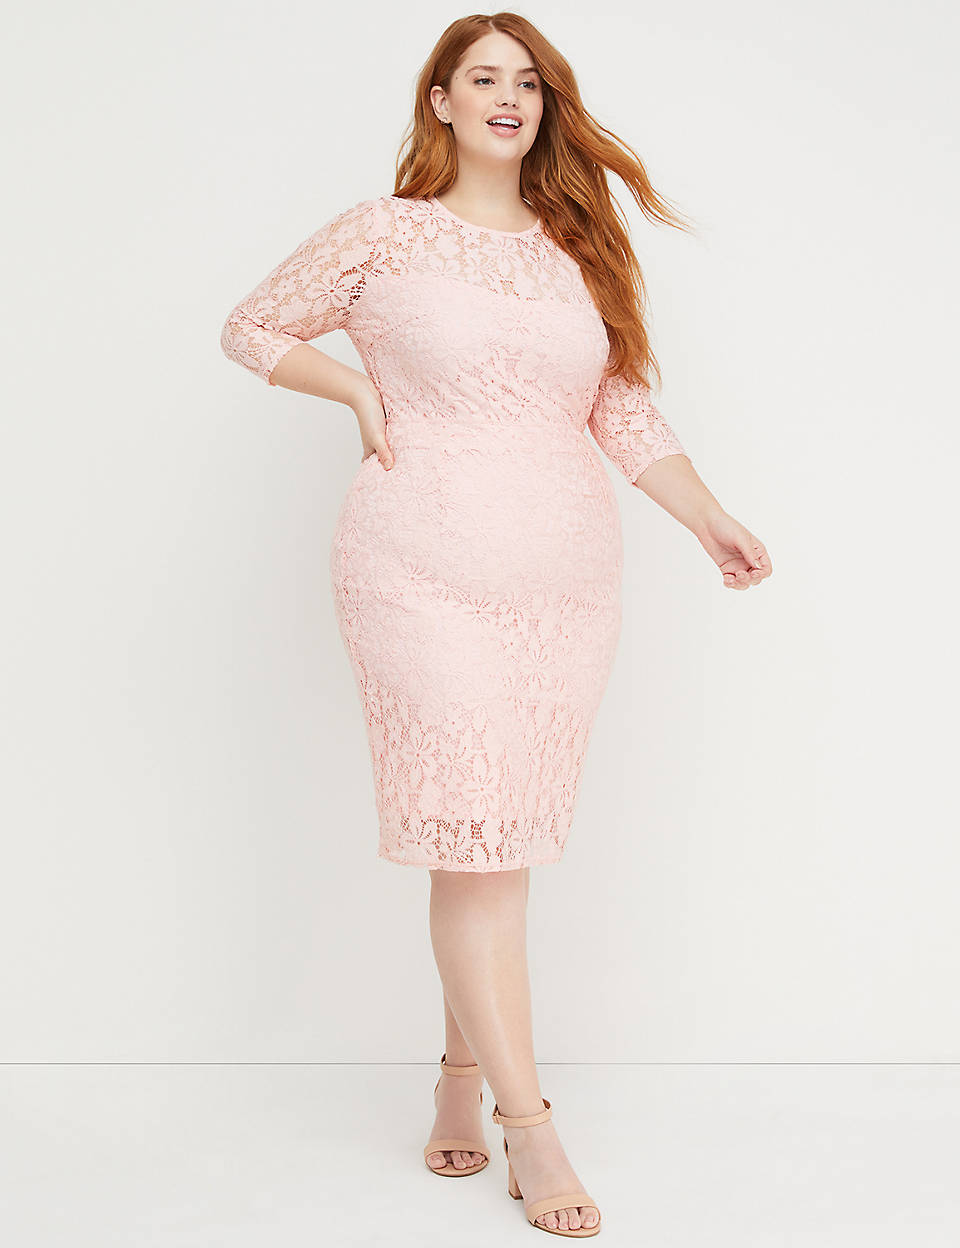 1edda39f5ab5 Beauticurve Lace Sheath Dress | Lane Bryant